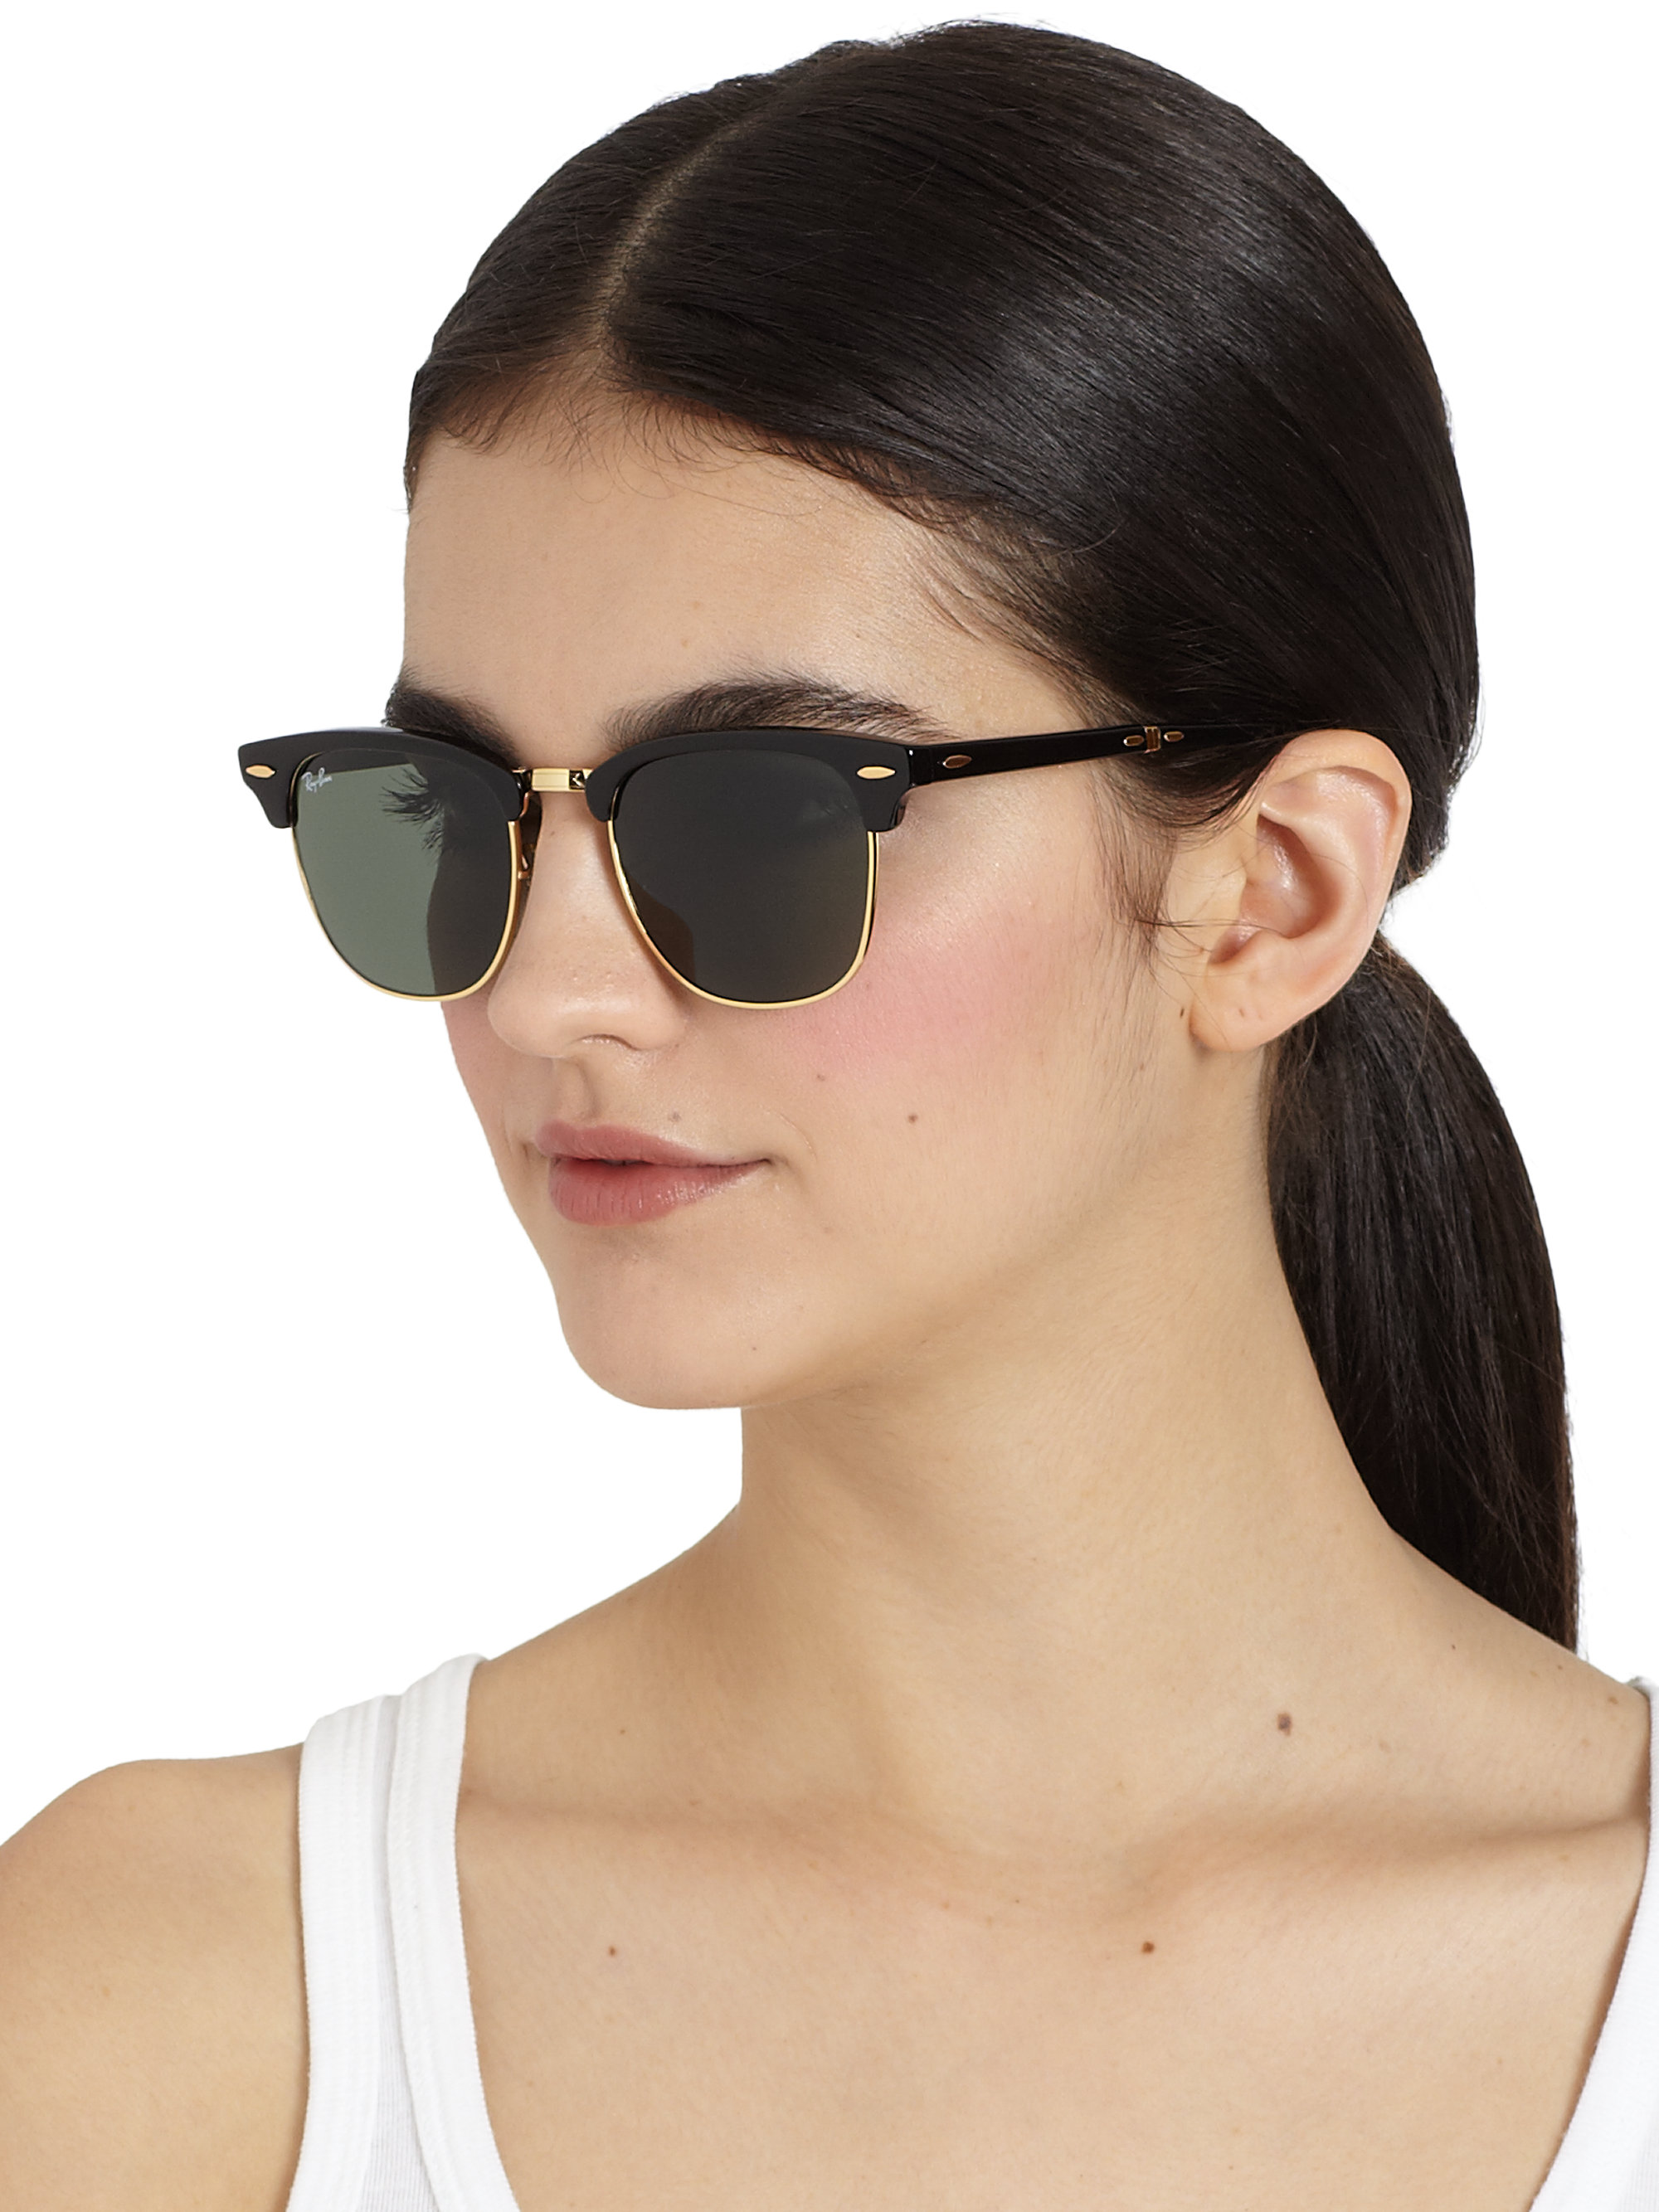 d9bcc8eae3 ... where can i buy gallery. previously sold at saks fifth avenue womens clubmaster  sunglasses womens new zealand dupes ray ban ...